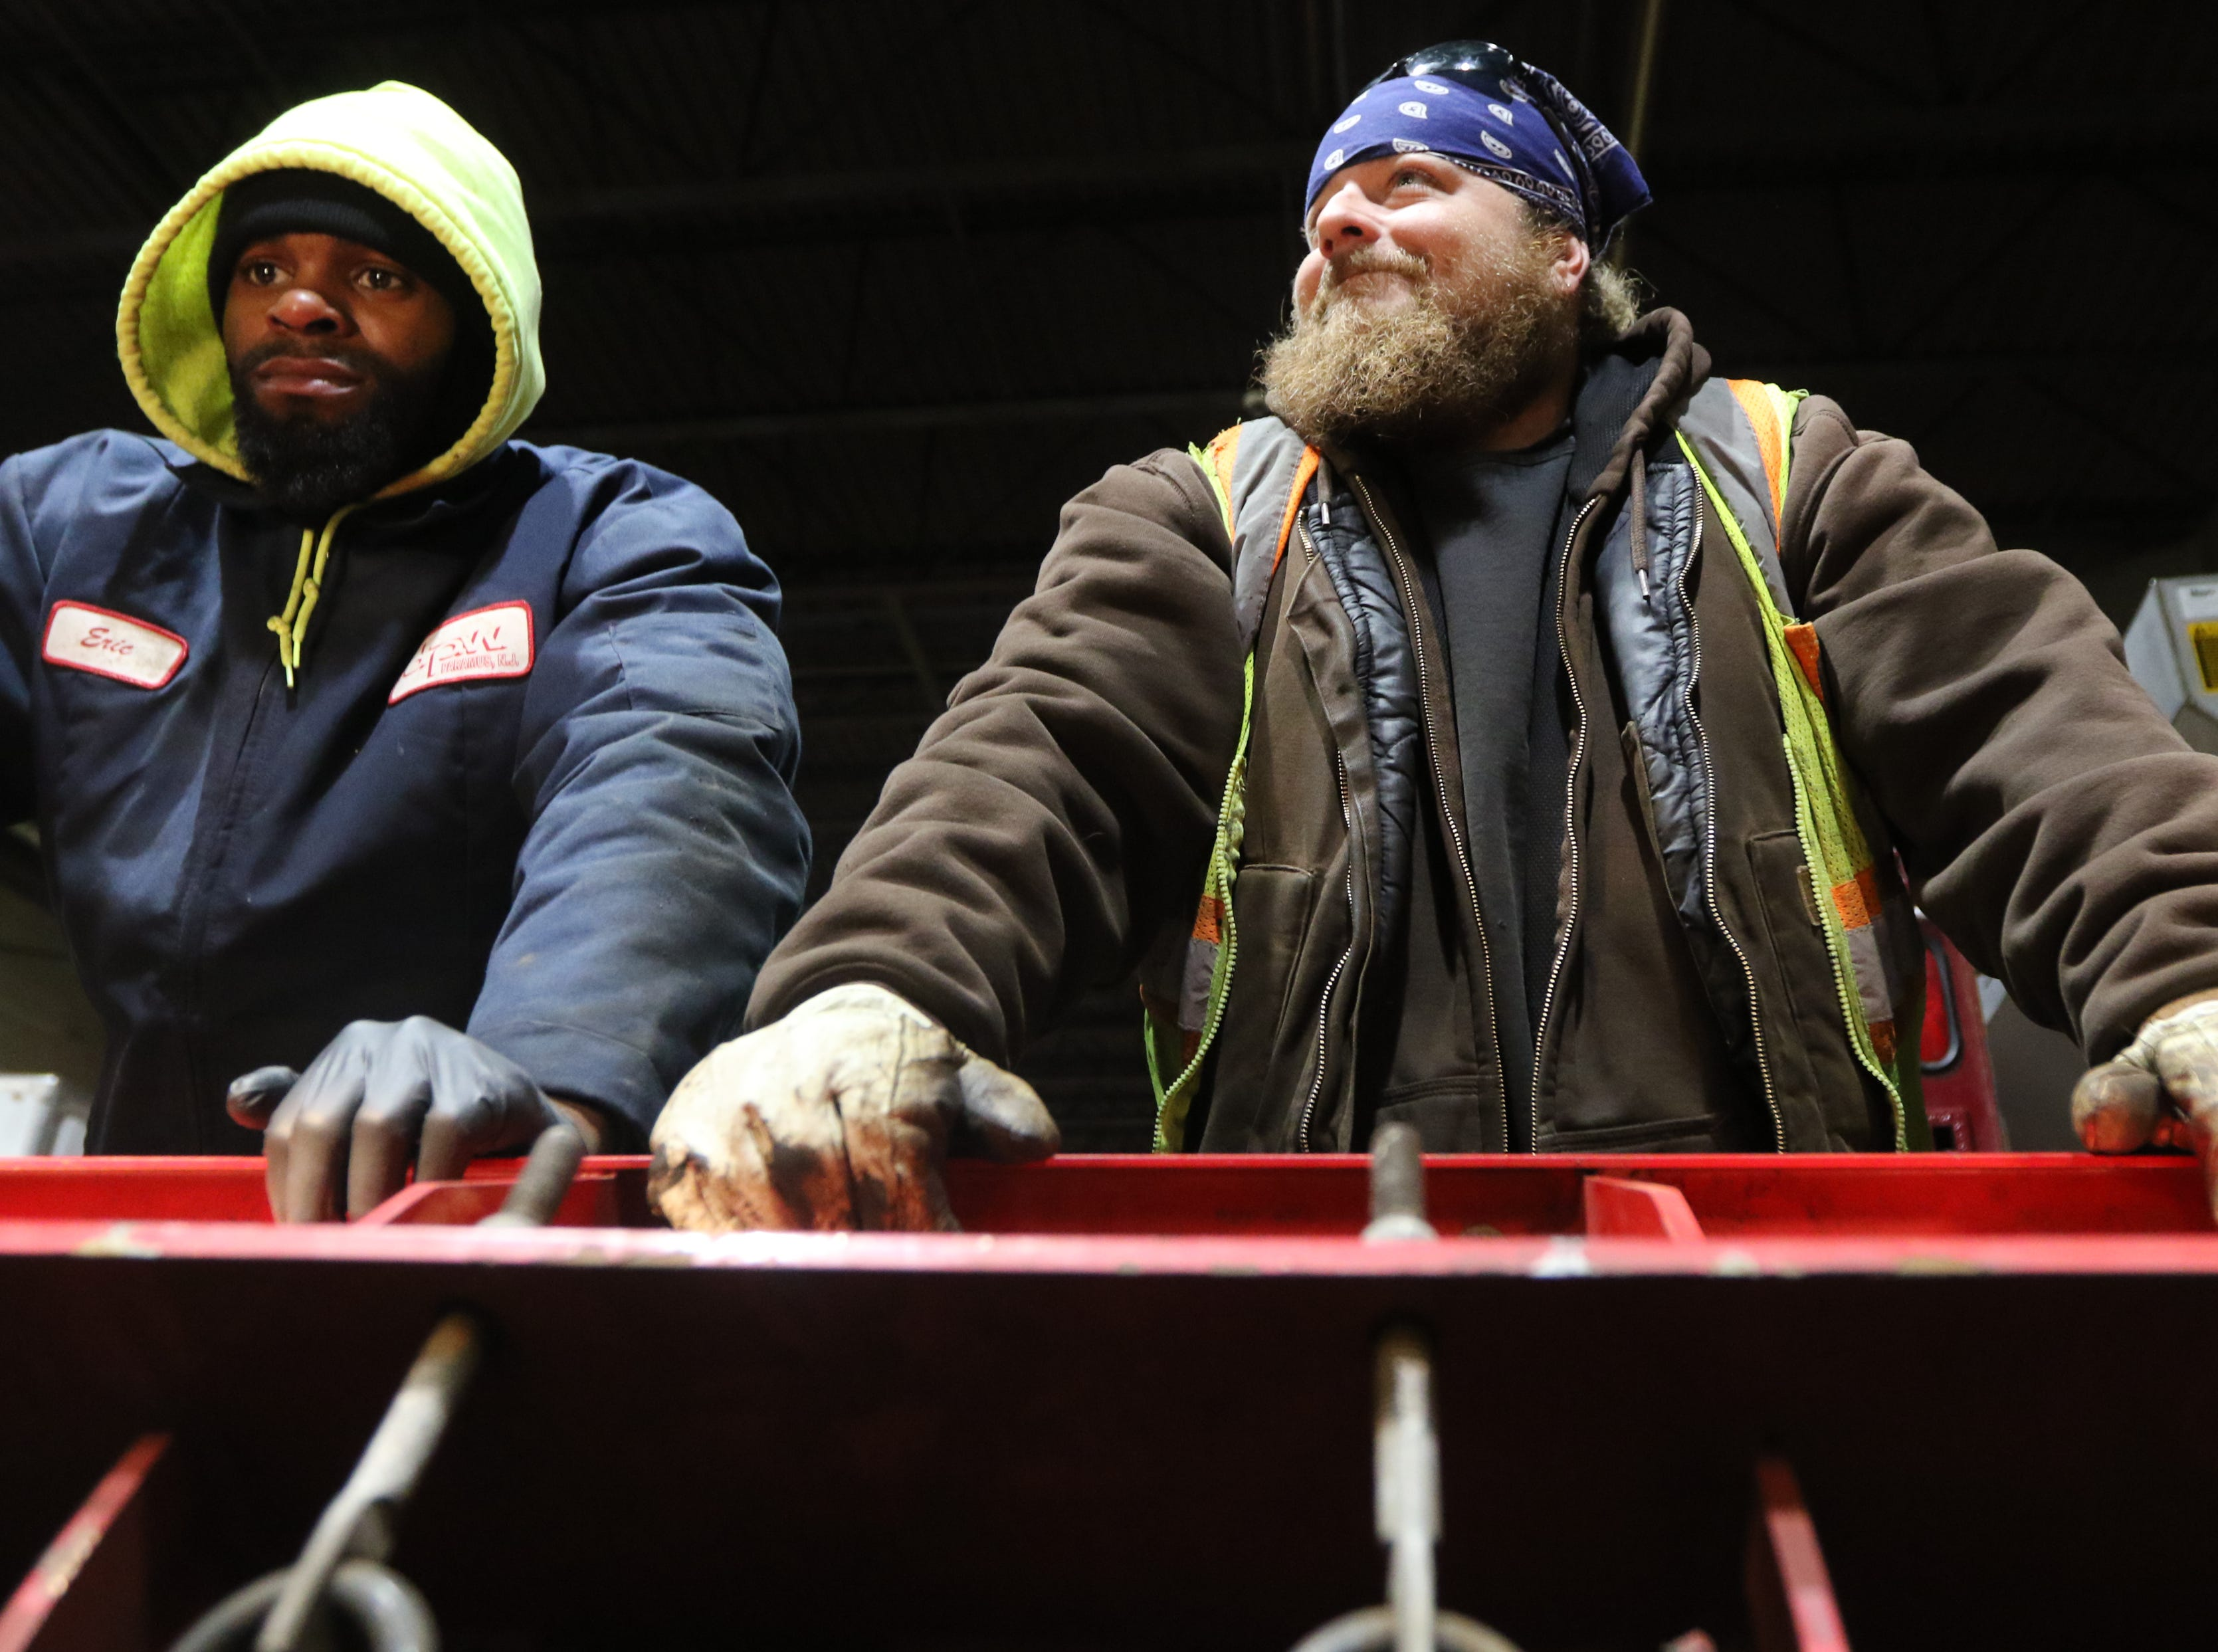 Heavy Equipment Operator, Sean Cullen (right) and Laborer, Eric Braddy, holds onto a plow as it is being repaired at the Paramus Department of Public Works. Wednesday, February 20, 2019.